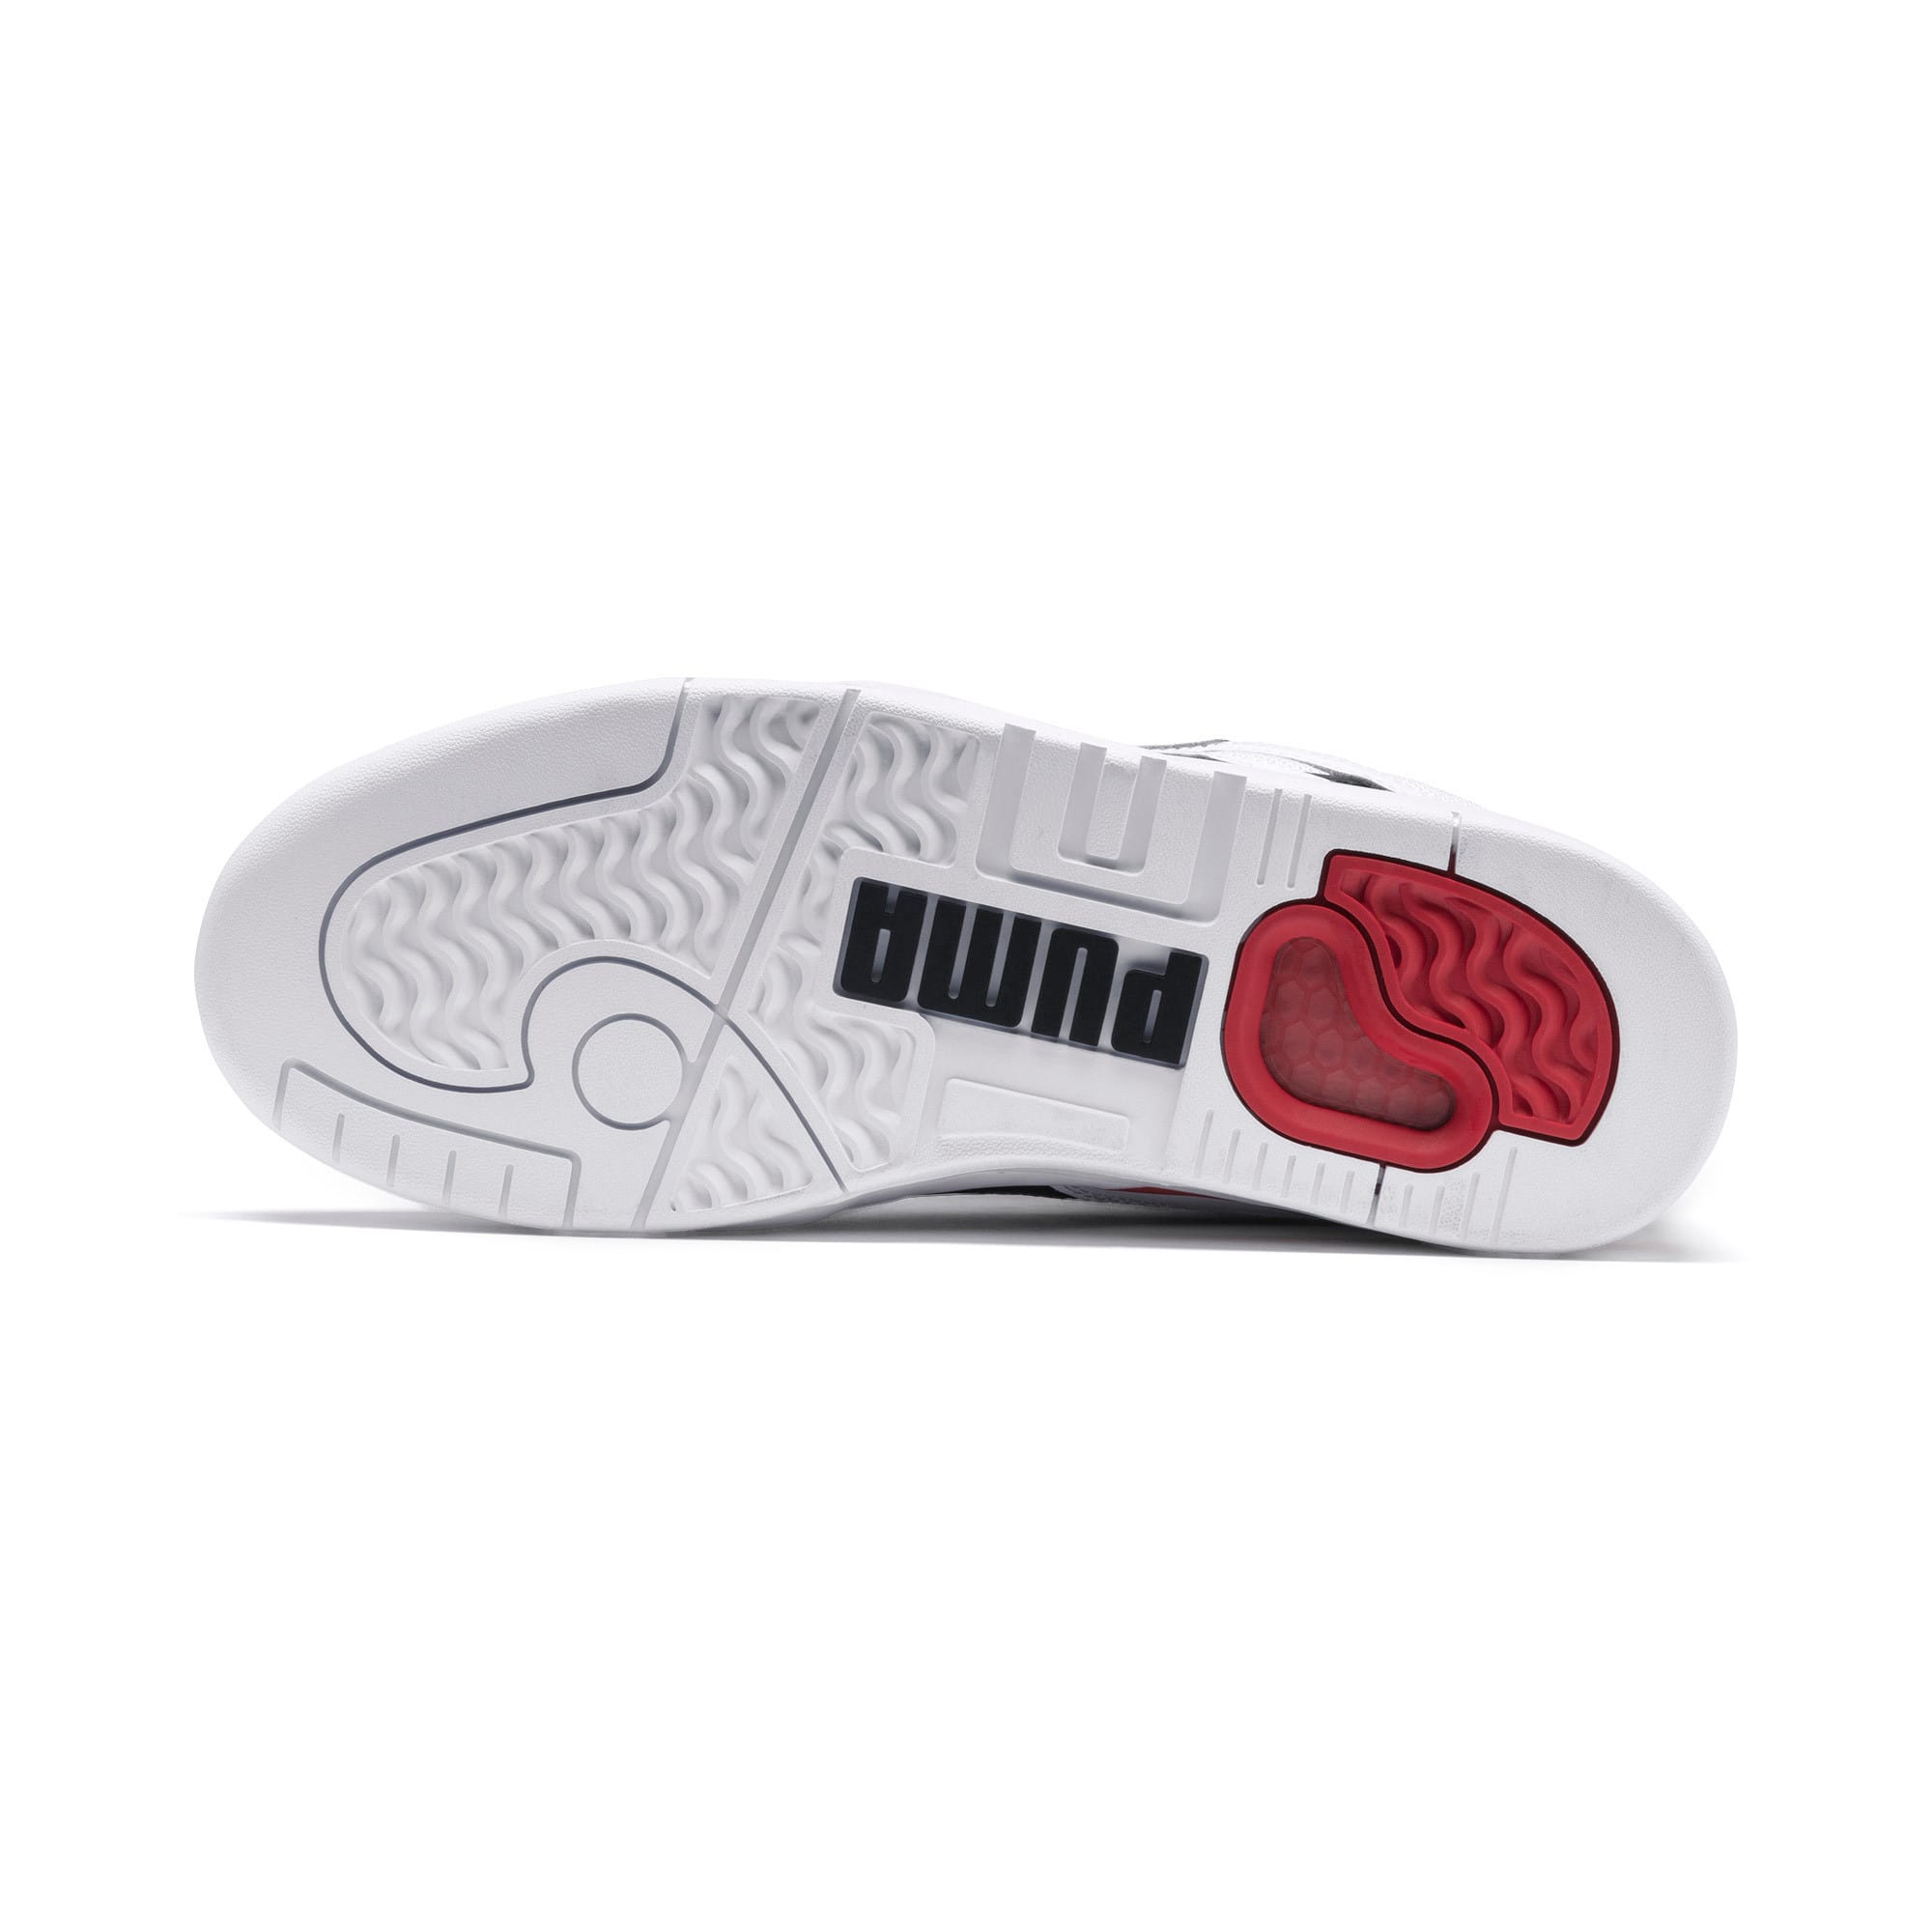 Anteprima 4 di Palace Guard Men's Basketball Trainers, Puma White-Puma Black-red, medio